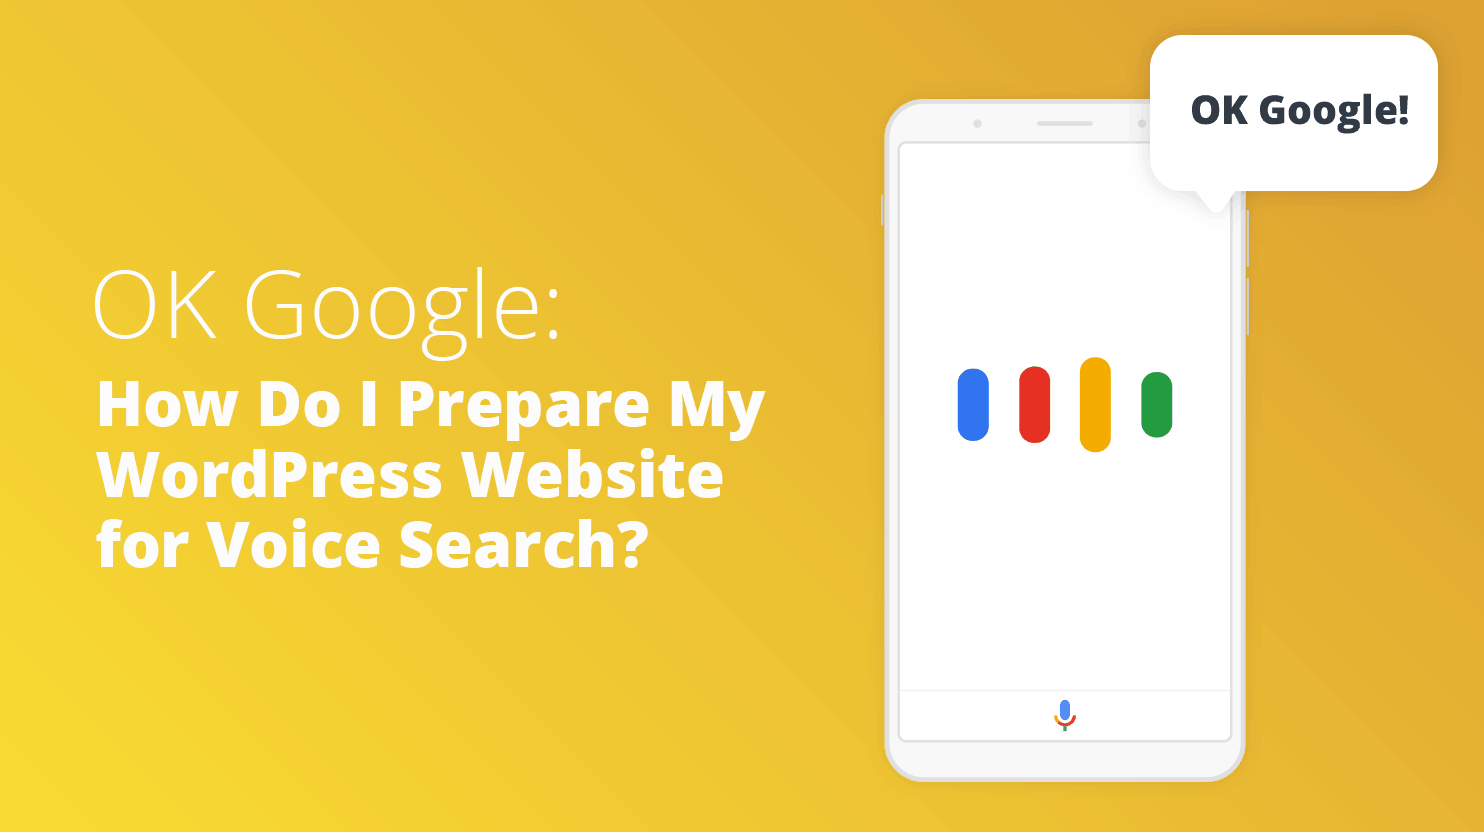 How to Prepare My WordPress Website for Voice Search